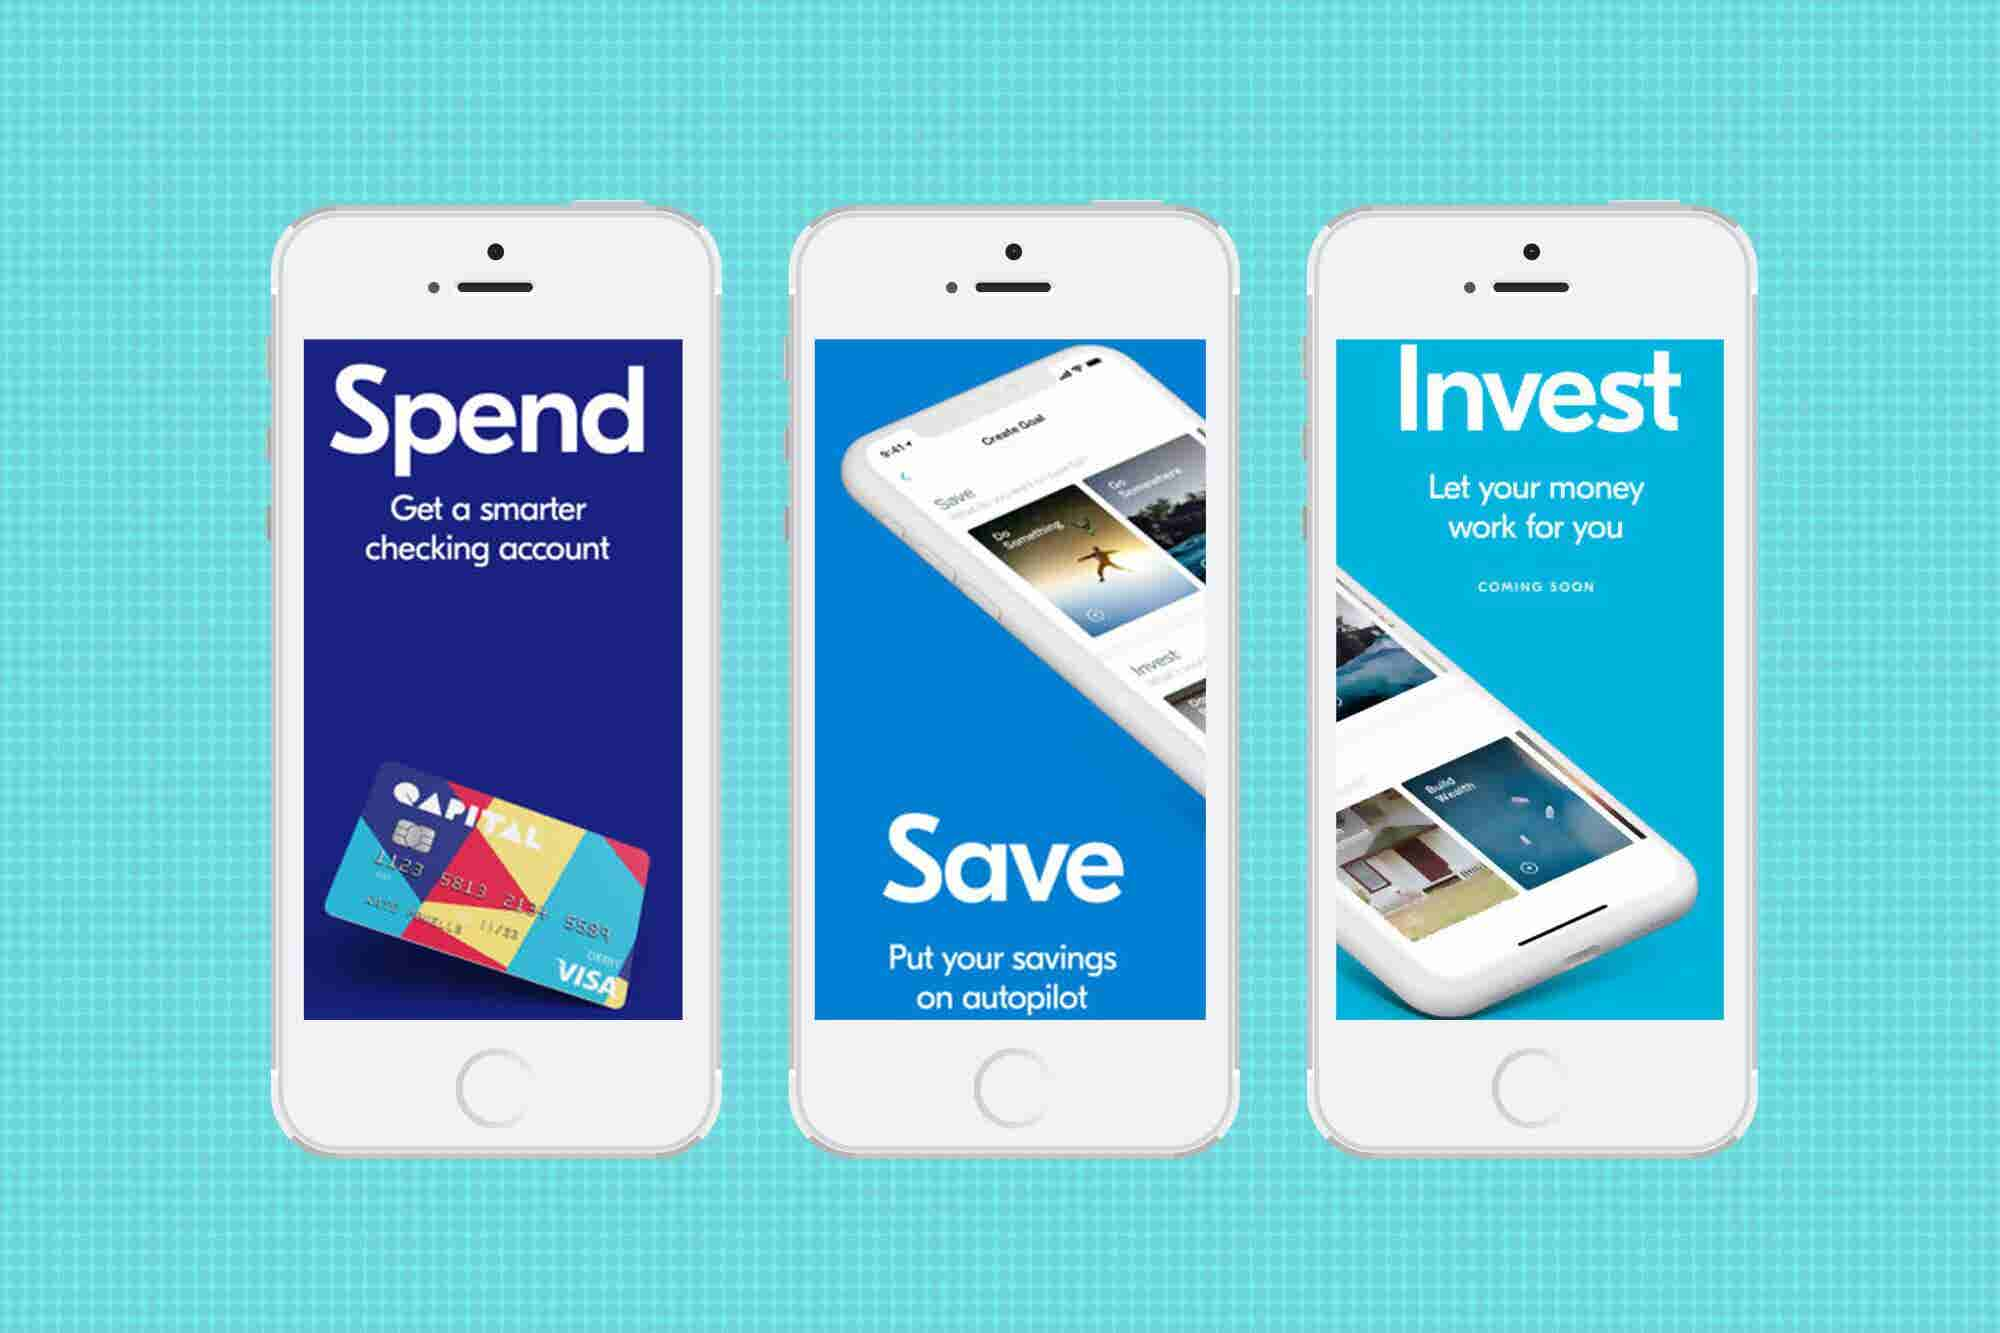 Take Control of Your Money Goals With These 4 Key Personal Finance Apps